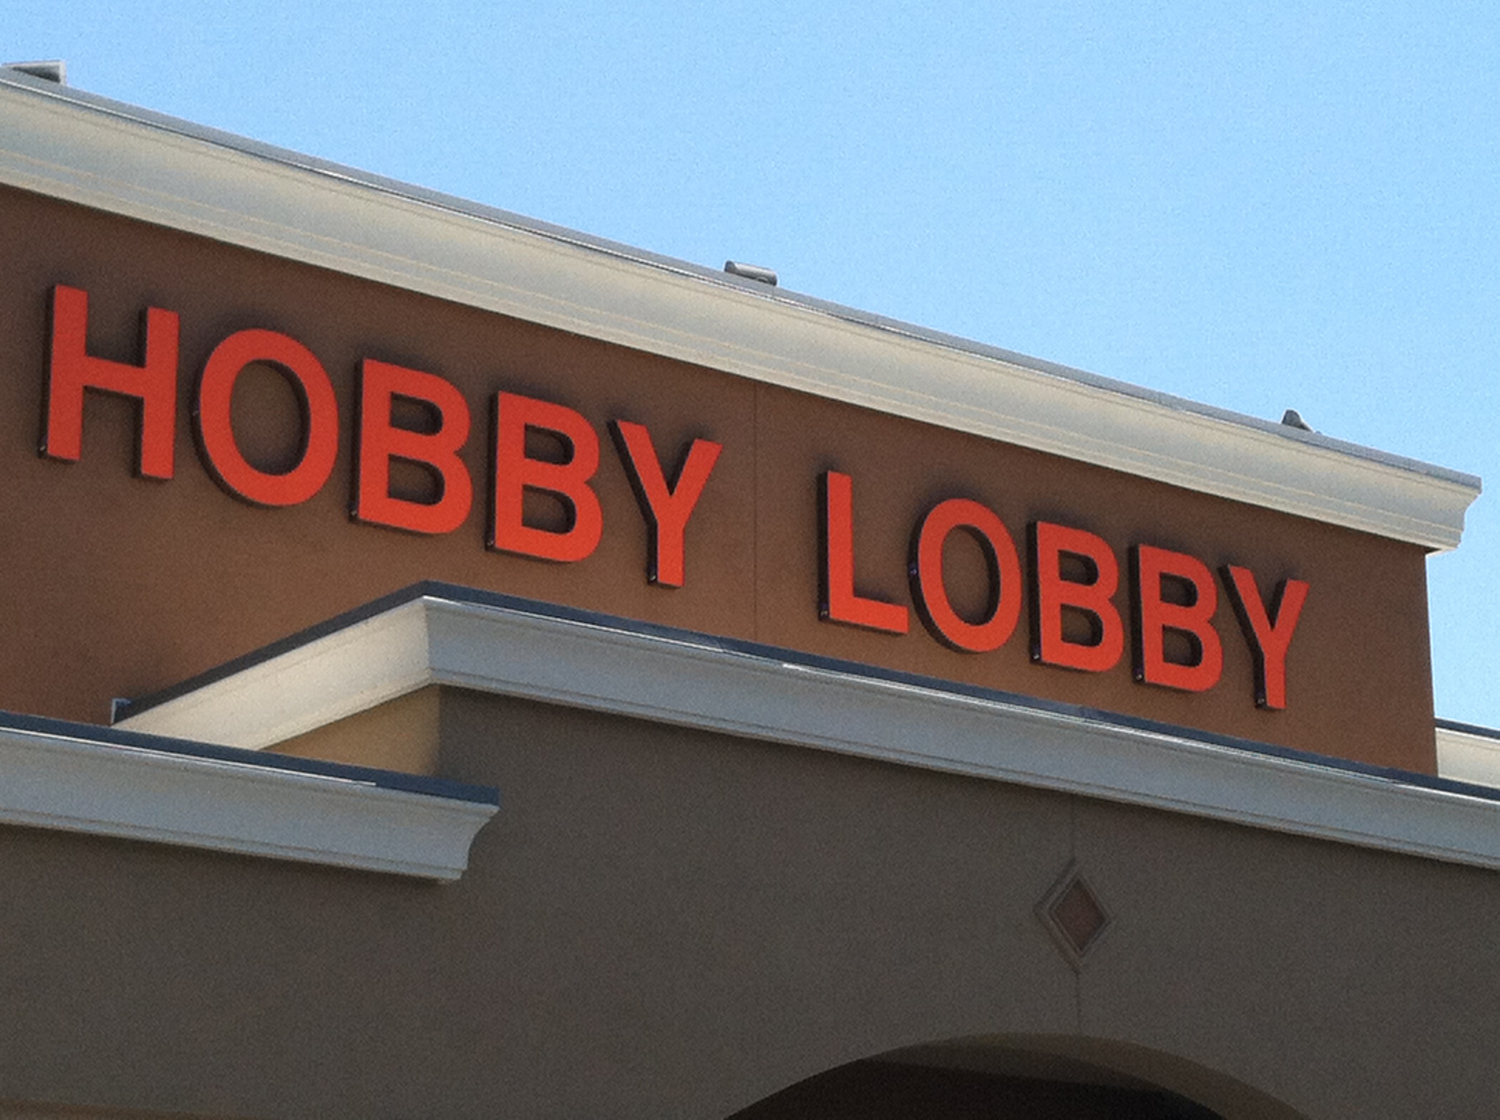 a Hobby Lobby store just moved into my neighborhood!